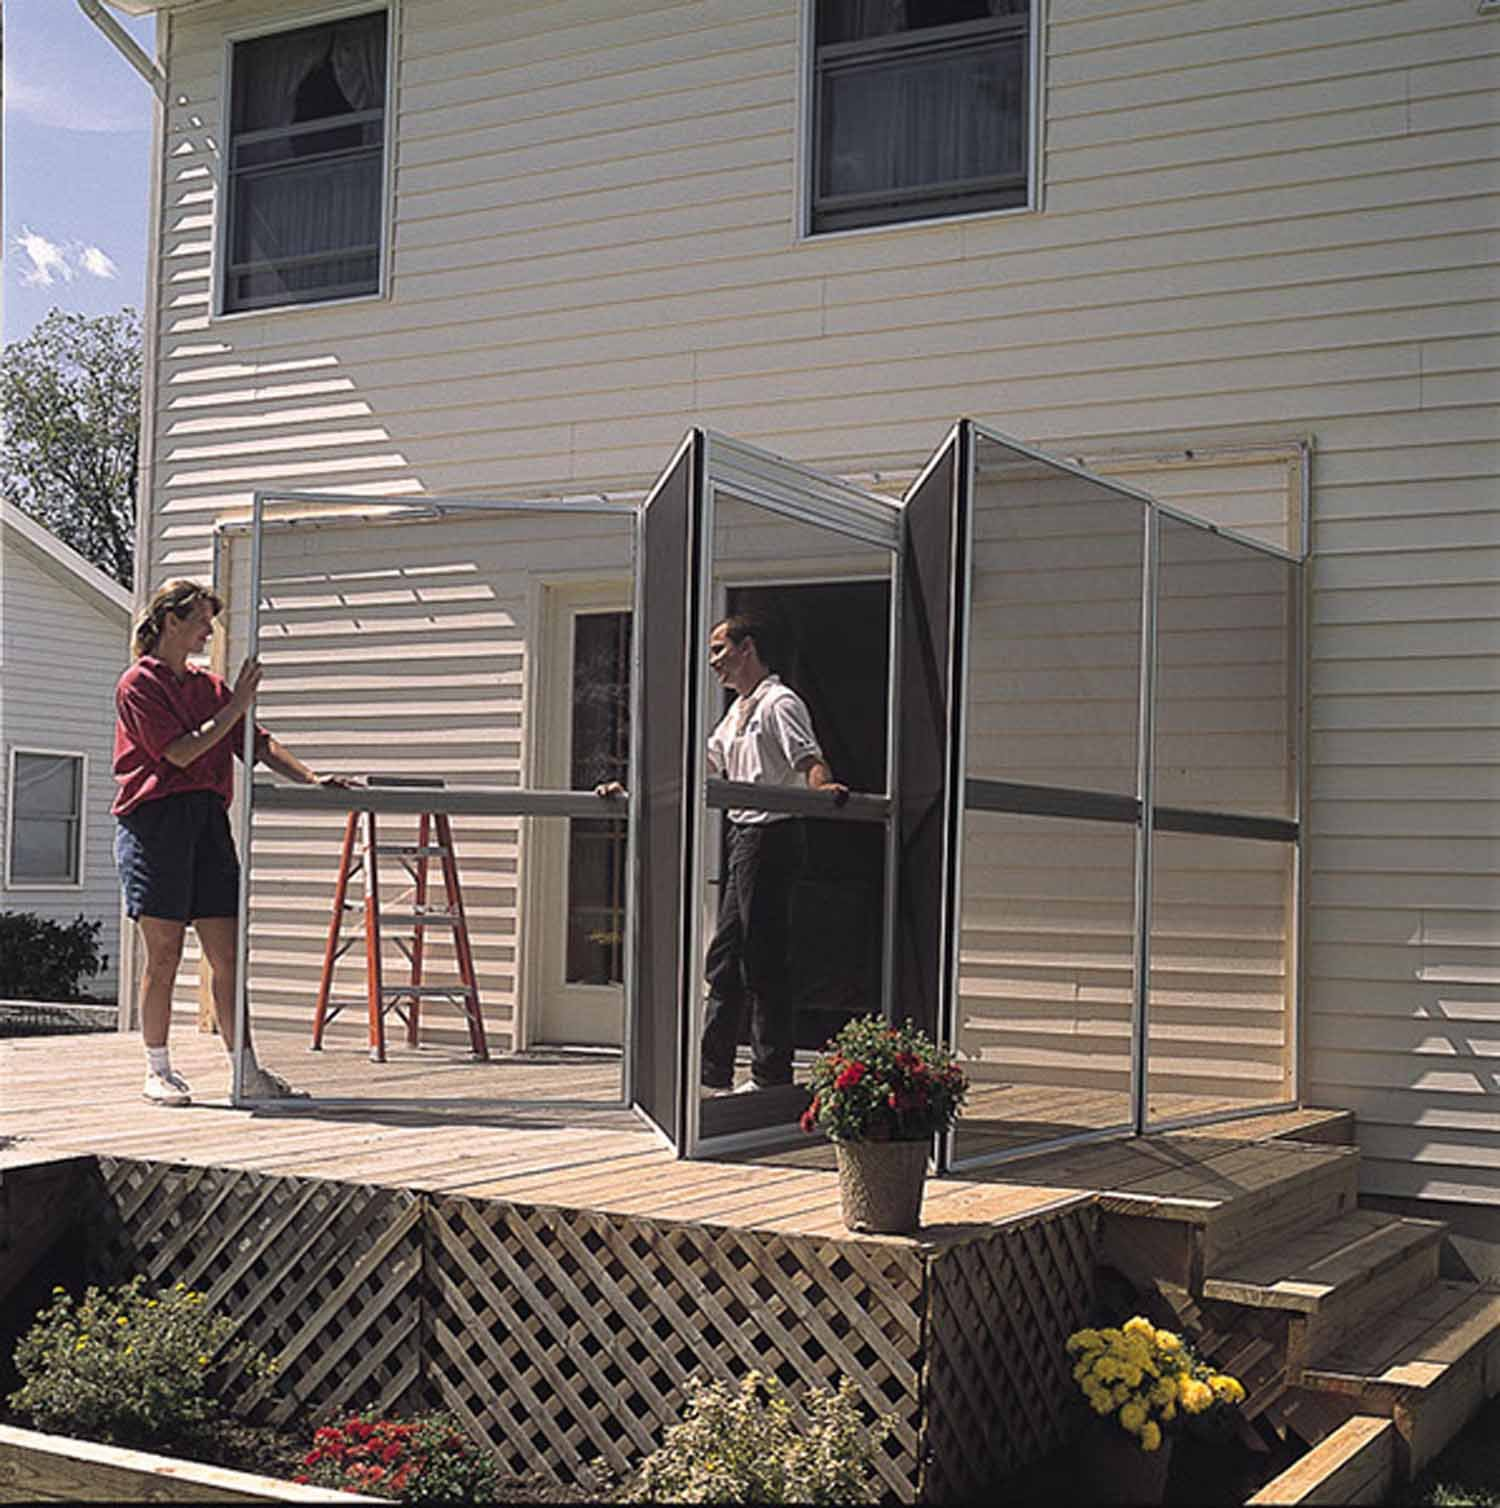 Patio Mate 12-Panel Screen Enclosure 29122, White with Gray Roof by PatioMate (Image #3)